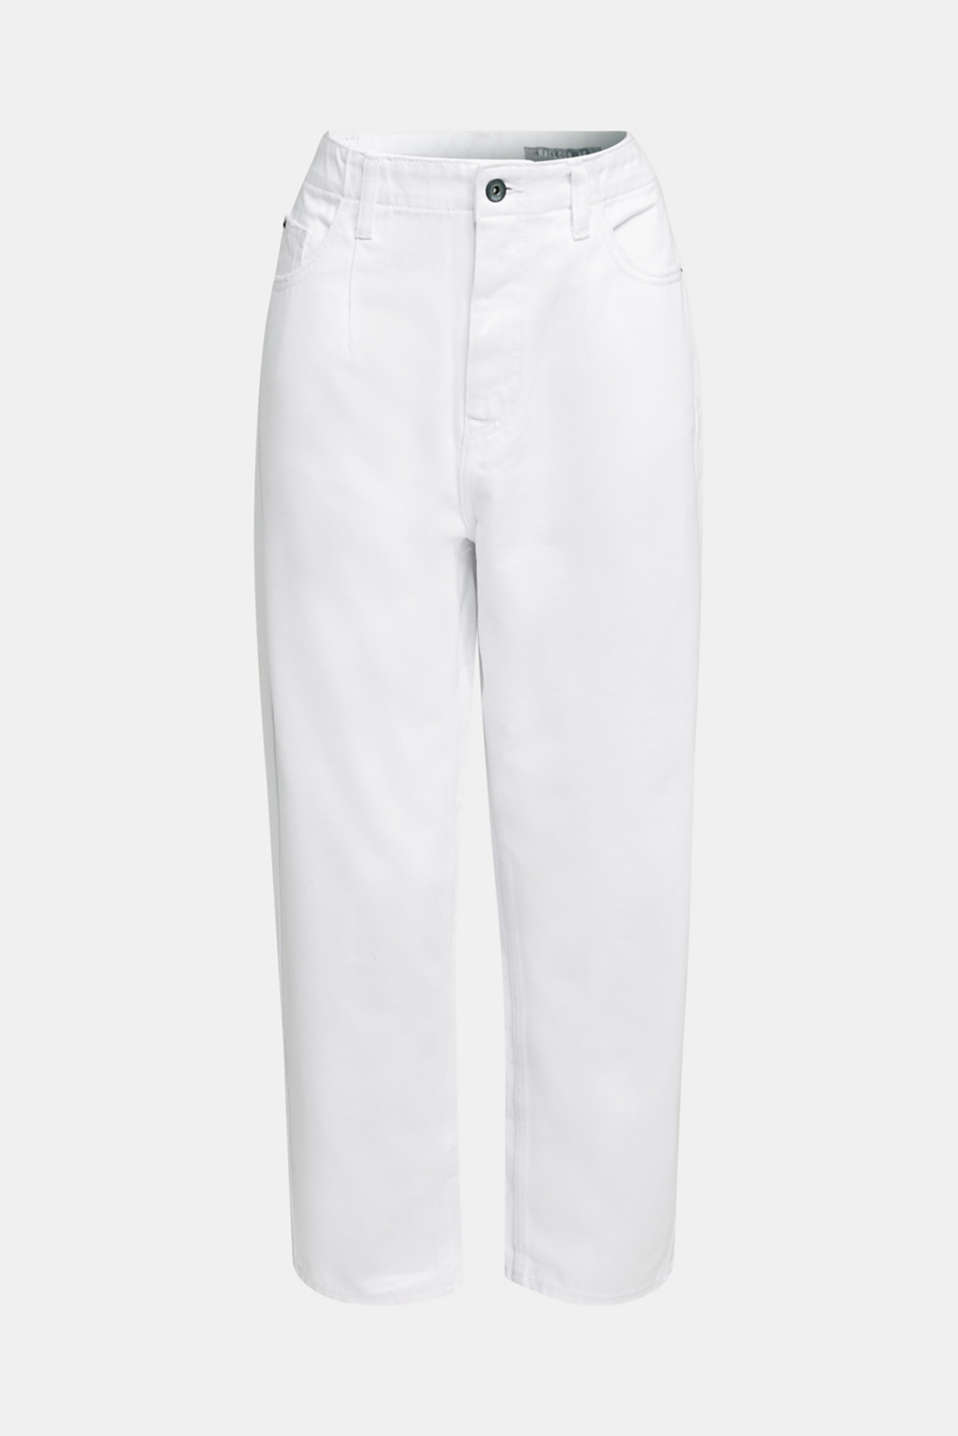 Trend jeans with waist pleats, 100% cotton, WHITE, detail image number 6